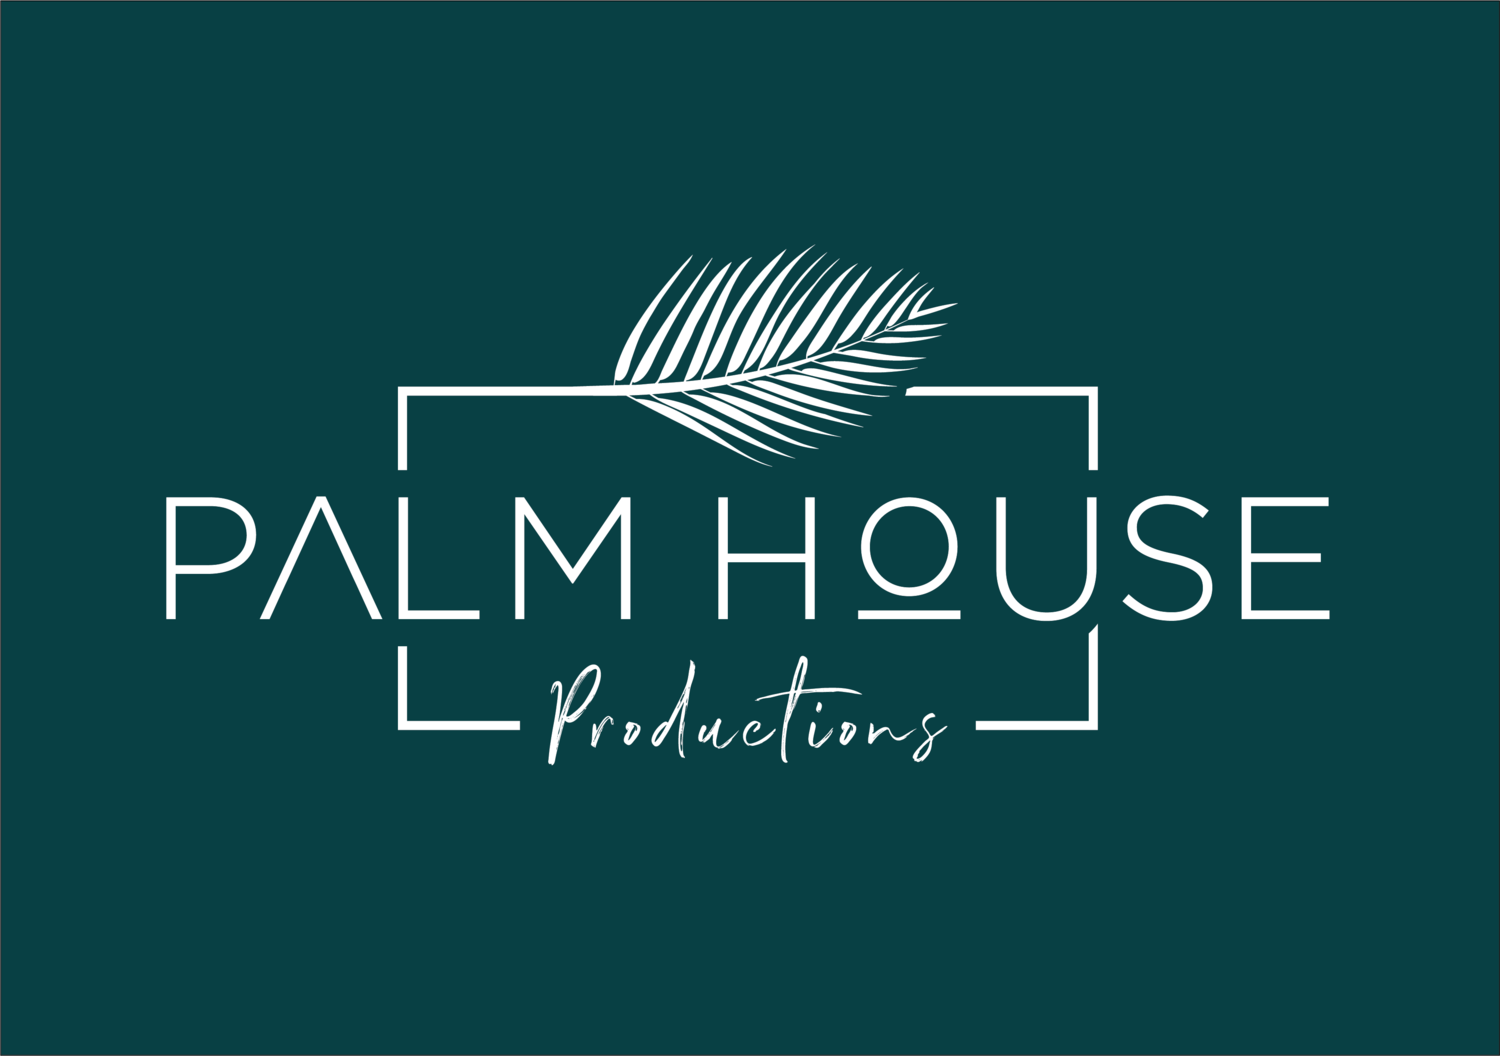 Palmhouse Productions